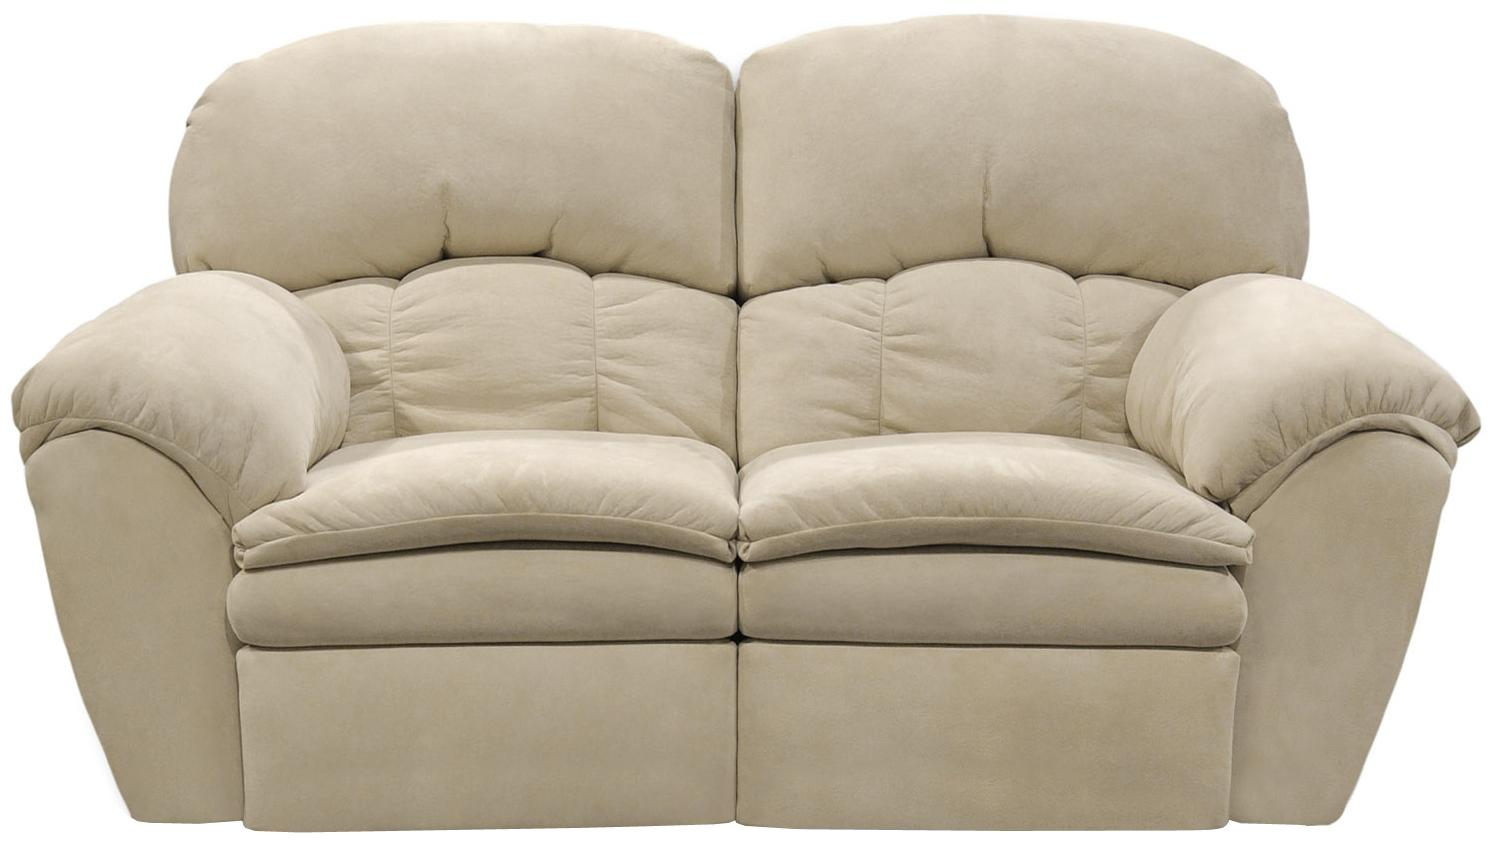 England Oakland Double Reclining Loveseat - Item Number: 7203